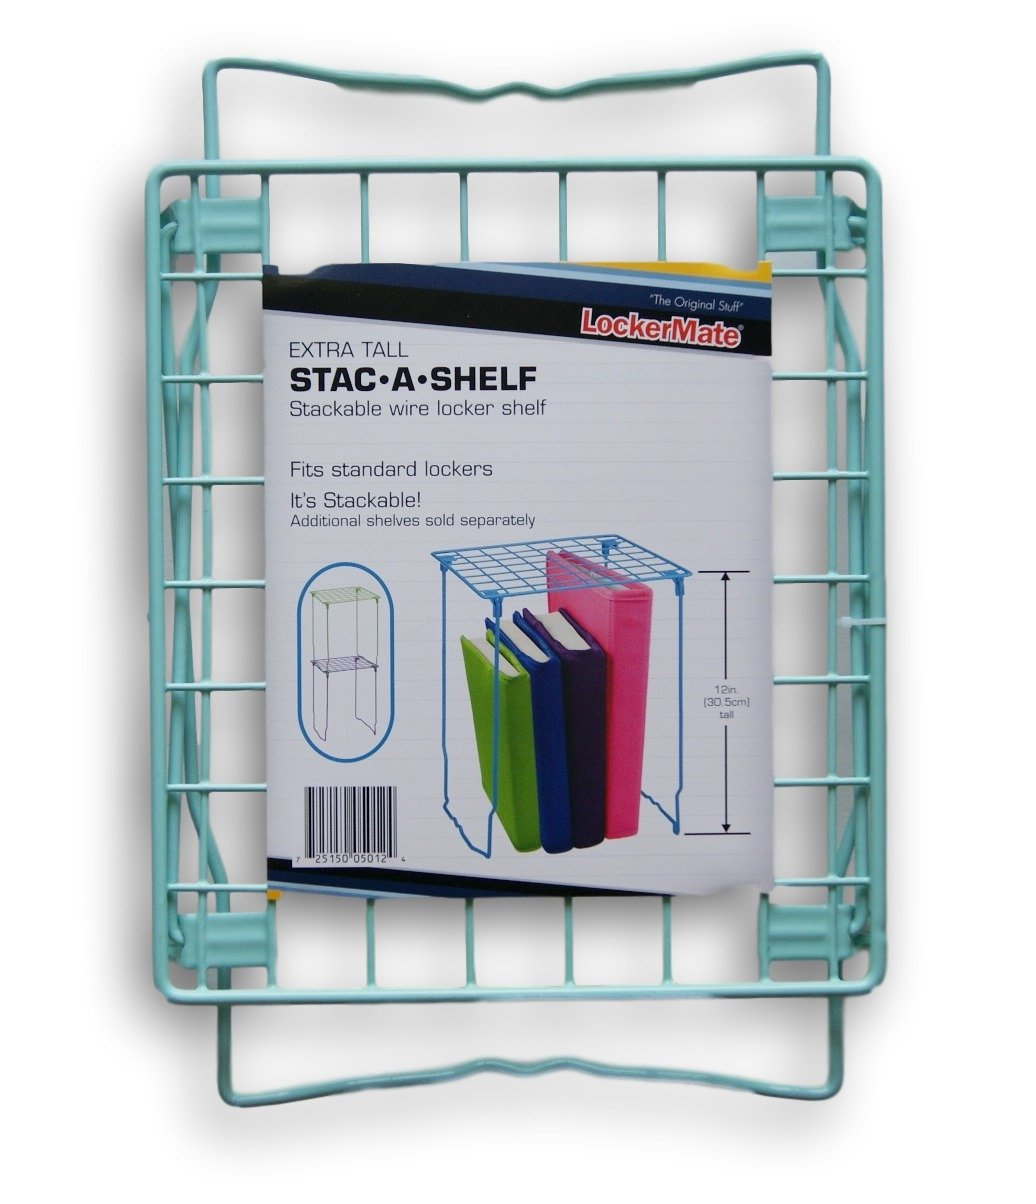 LockerMate stac-a-shelf – Pastel Azul y verde – 12